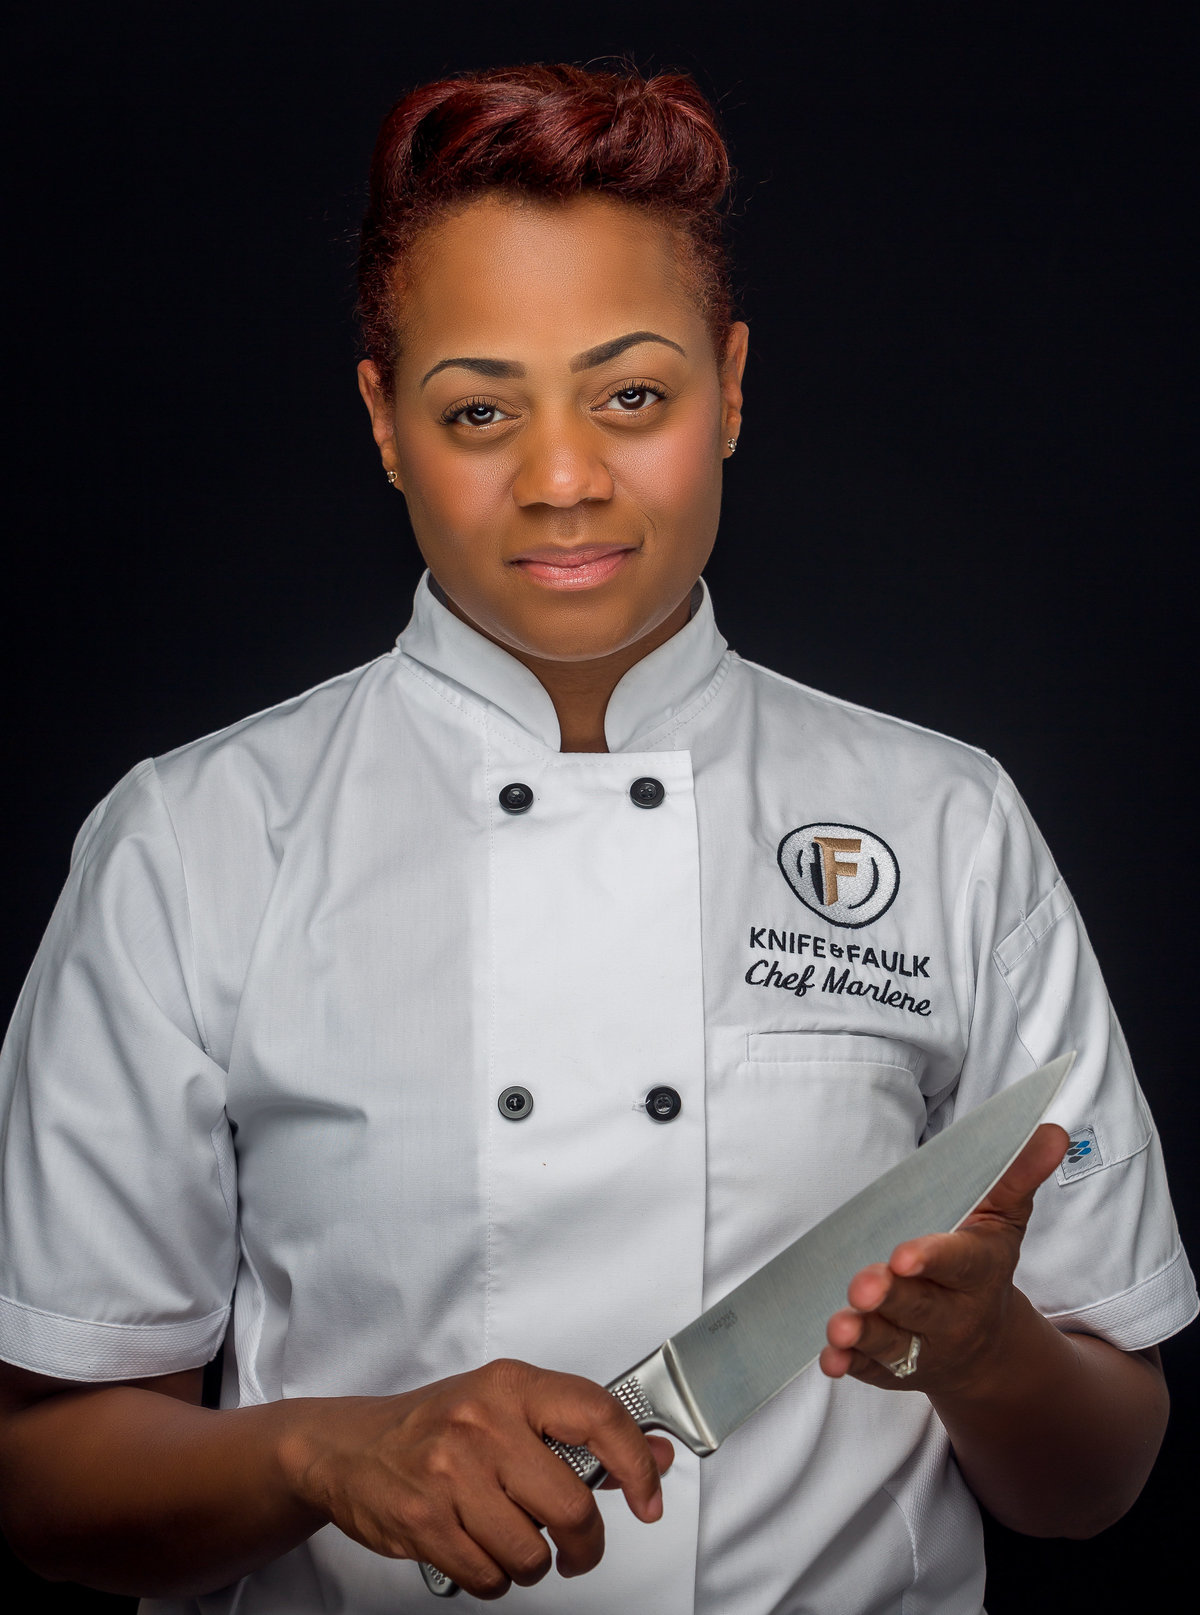 headshots-entrepreneur-chef-food-2